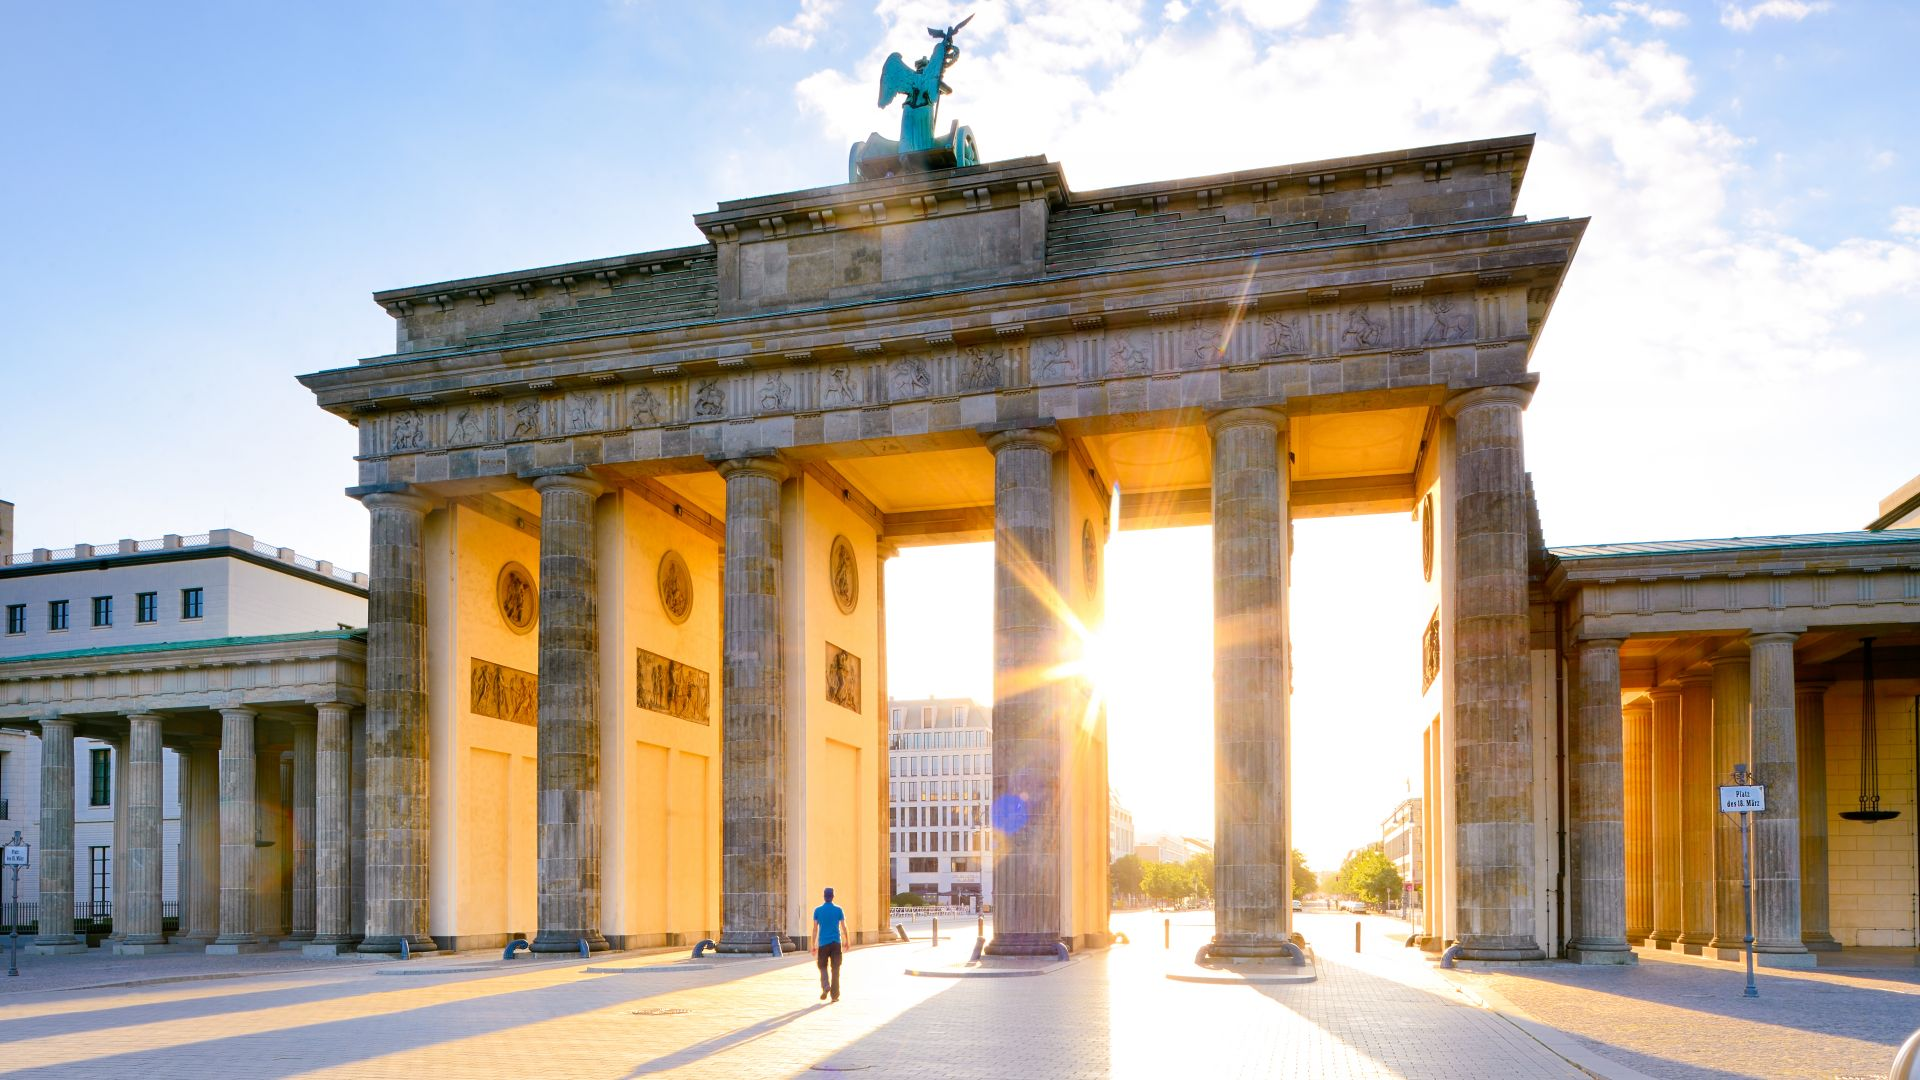 Berlin: Brandenburger Tor morning light